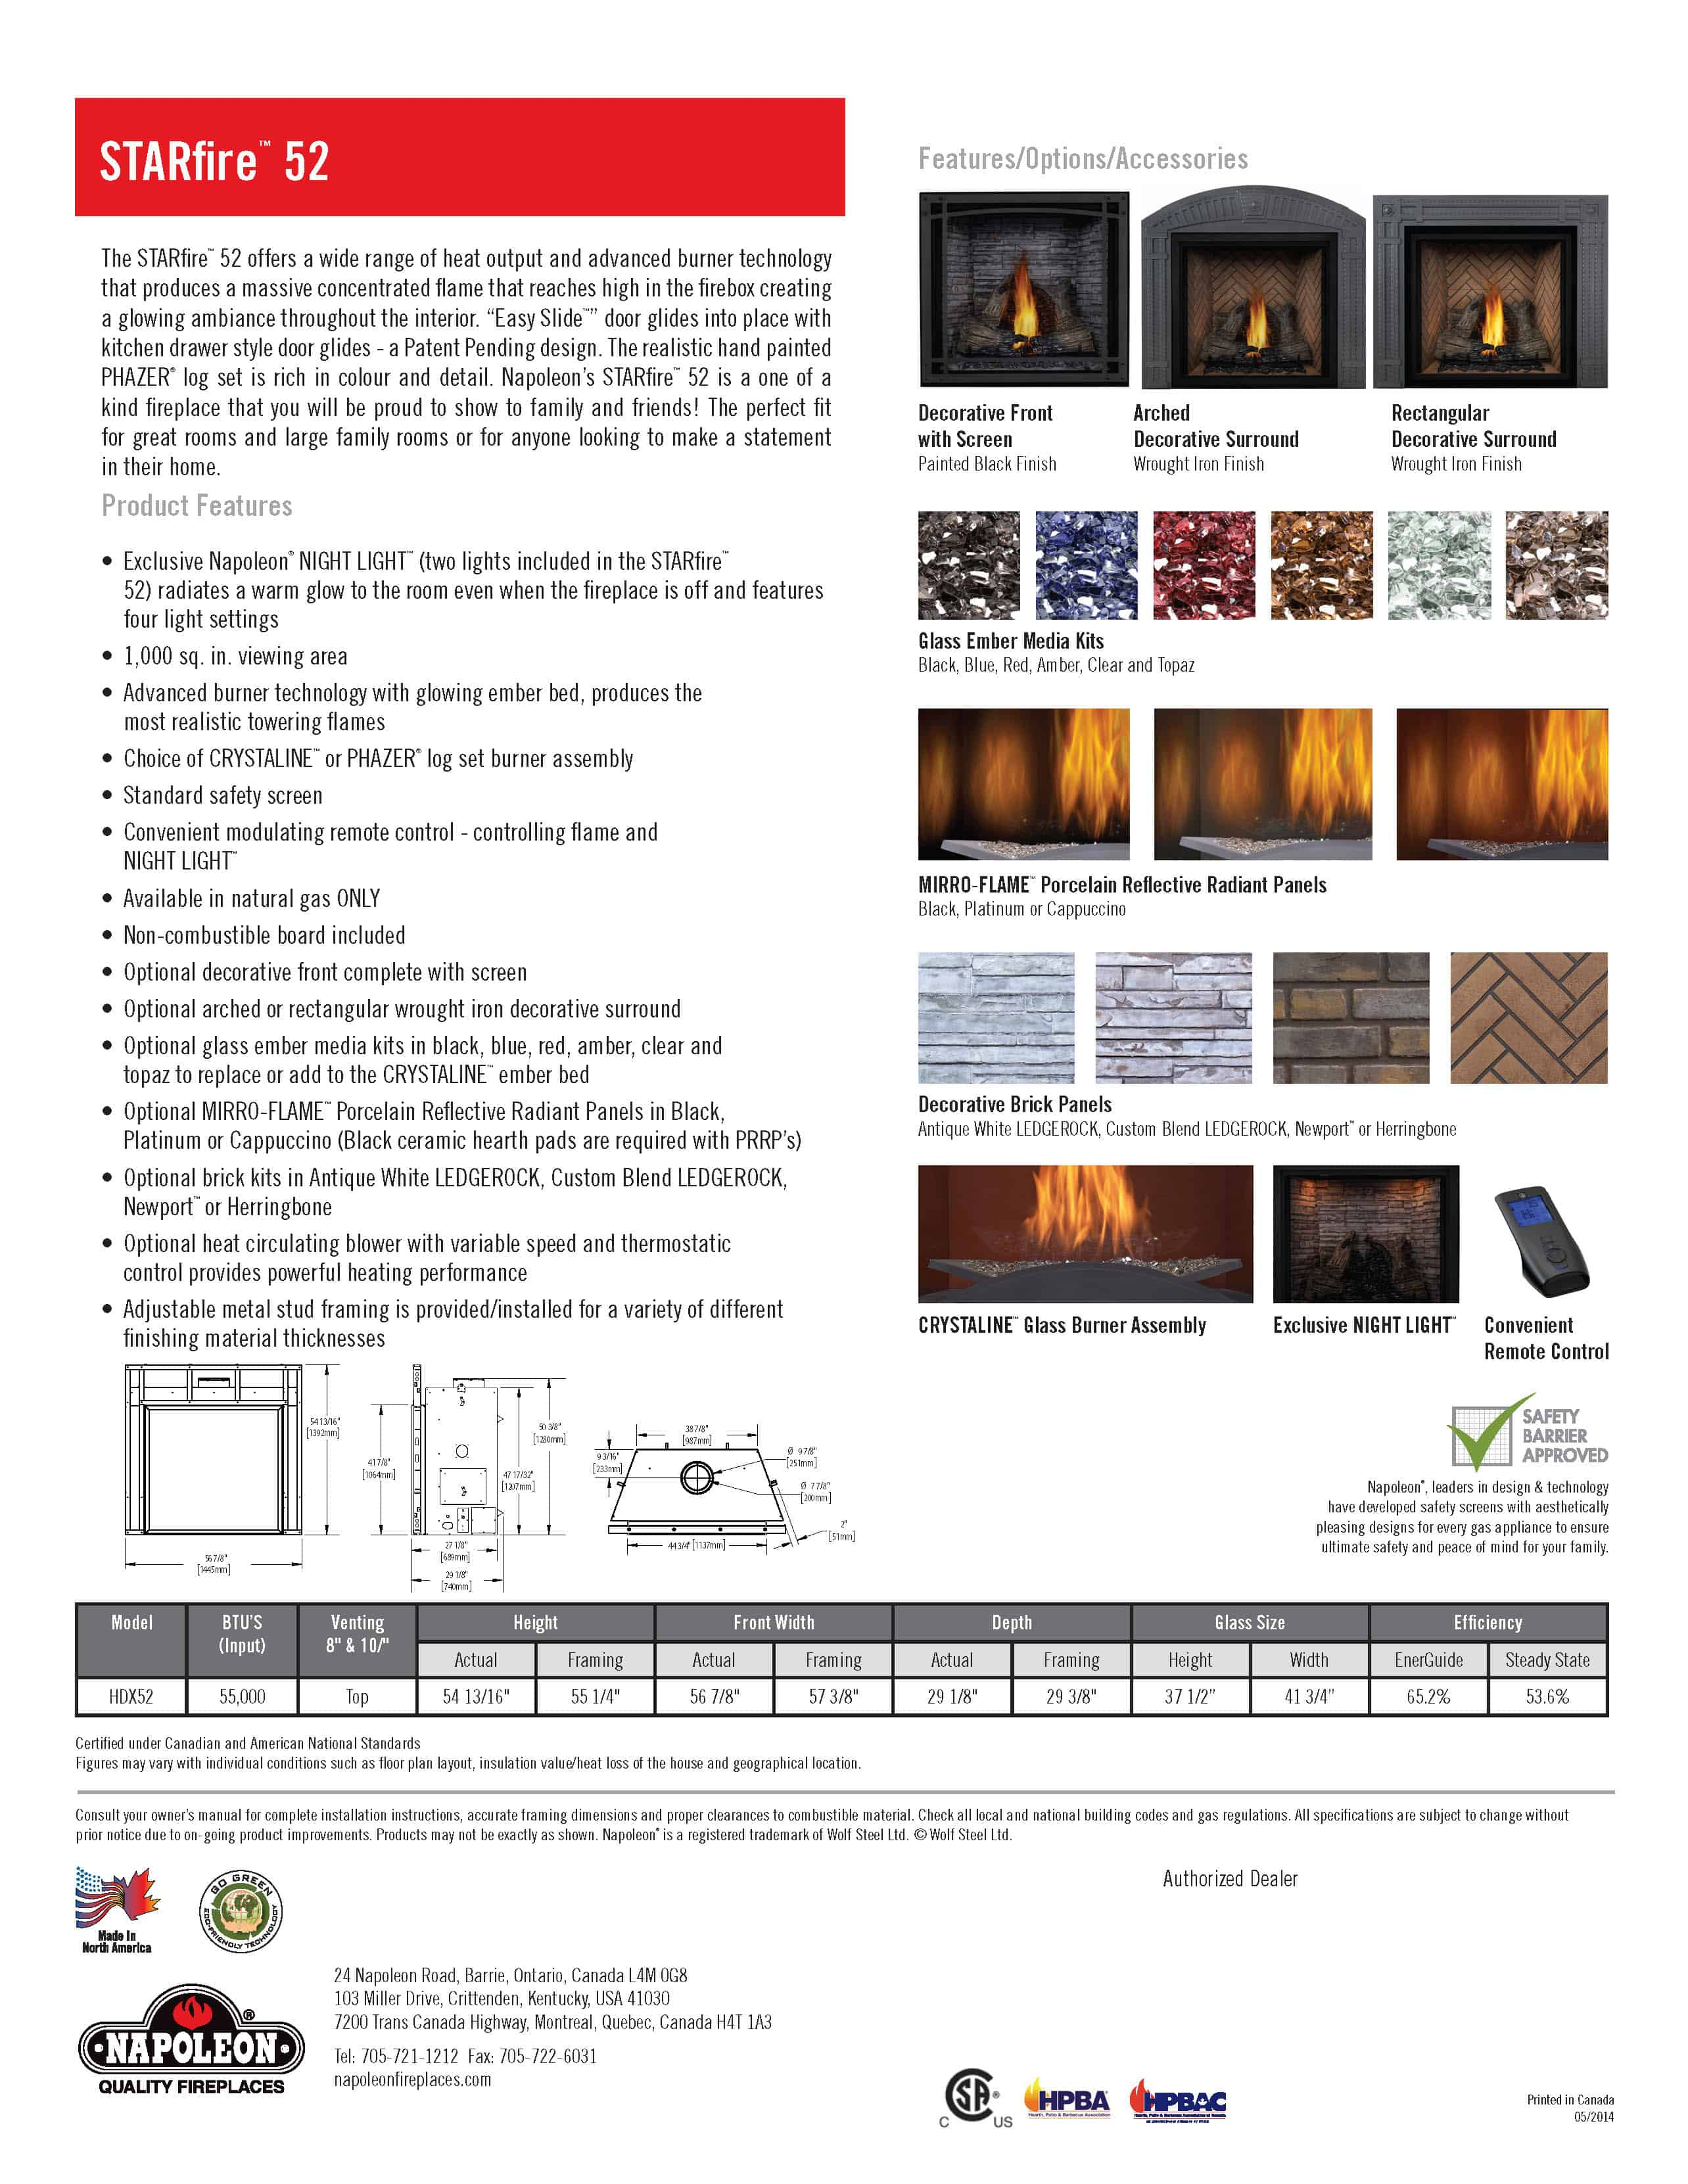 Biggest Gas Direct Vent Fireplace - STARfire™ 52 by Napoleon HDX52 2